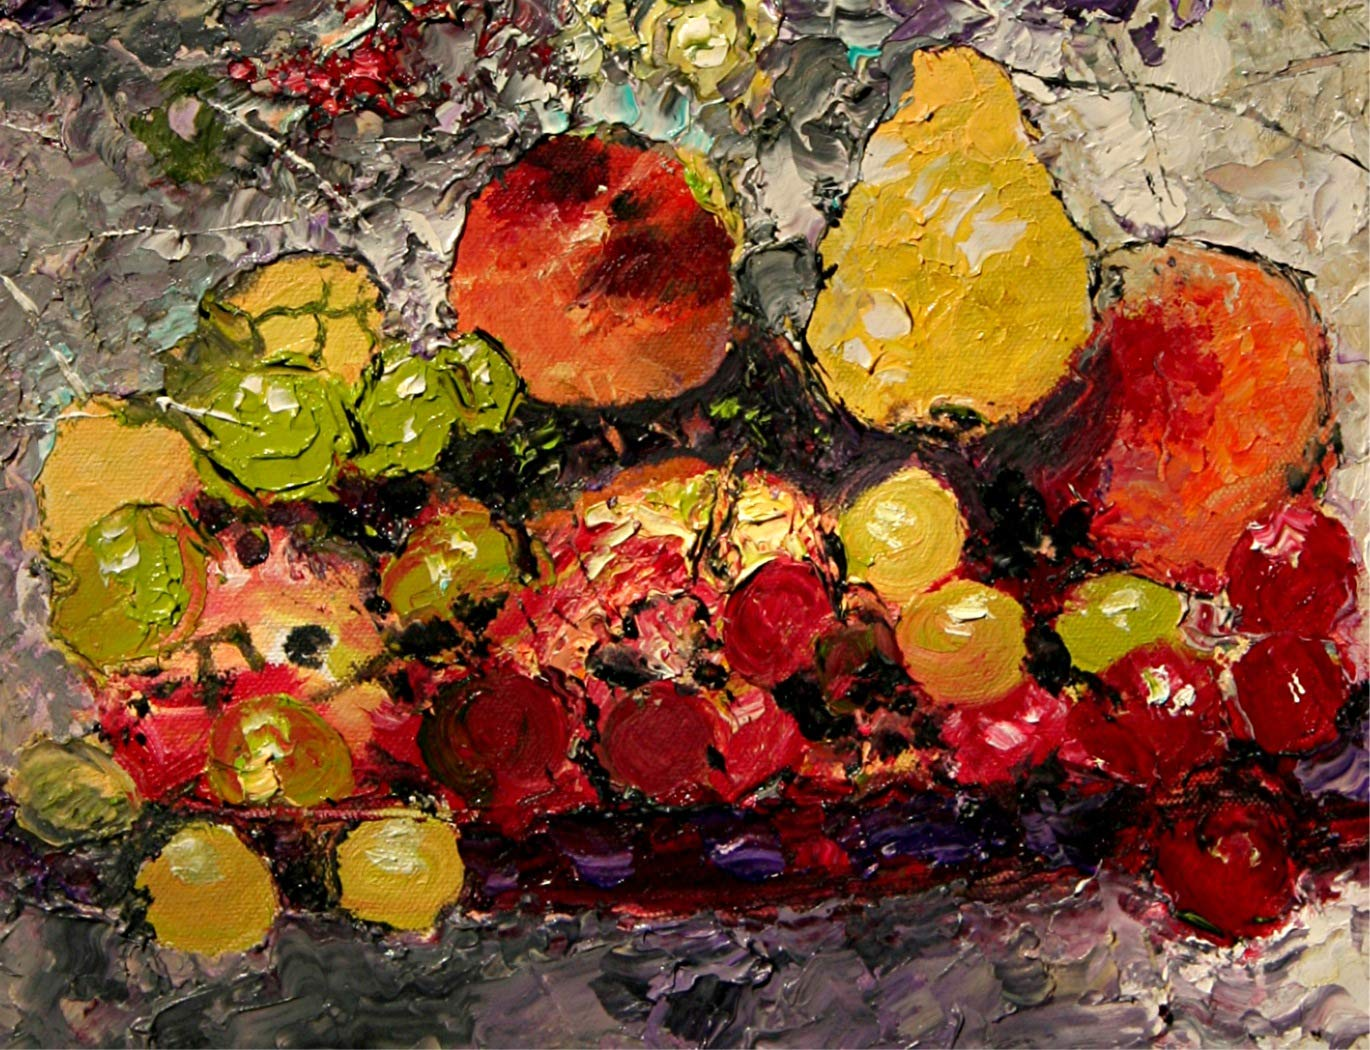 The Still Life fruit and flower still life by internationally renown painter Andre Dluhos